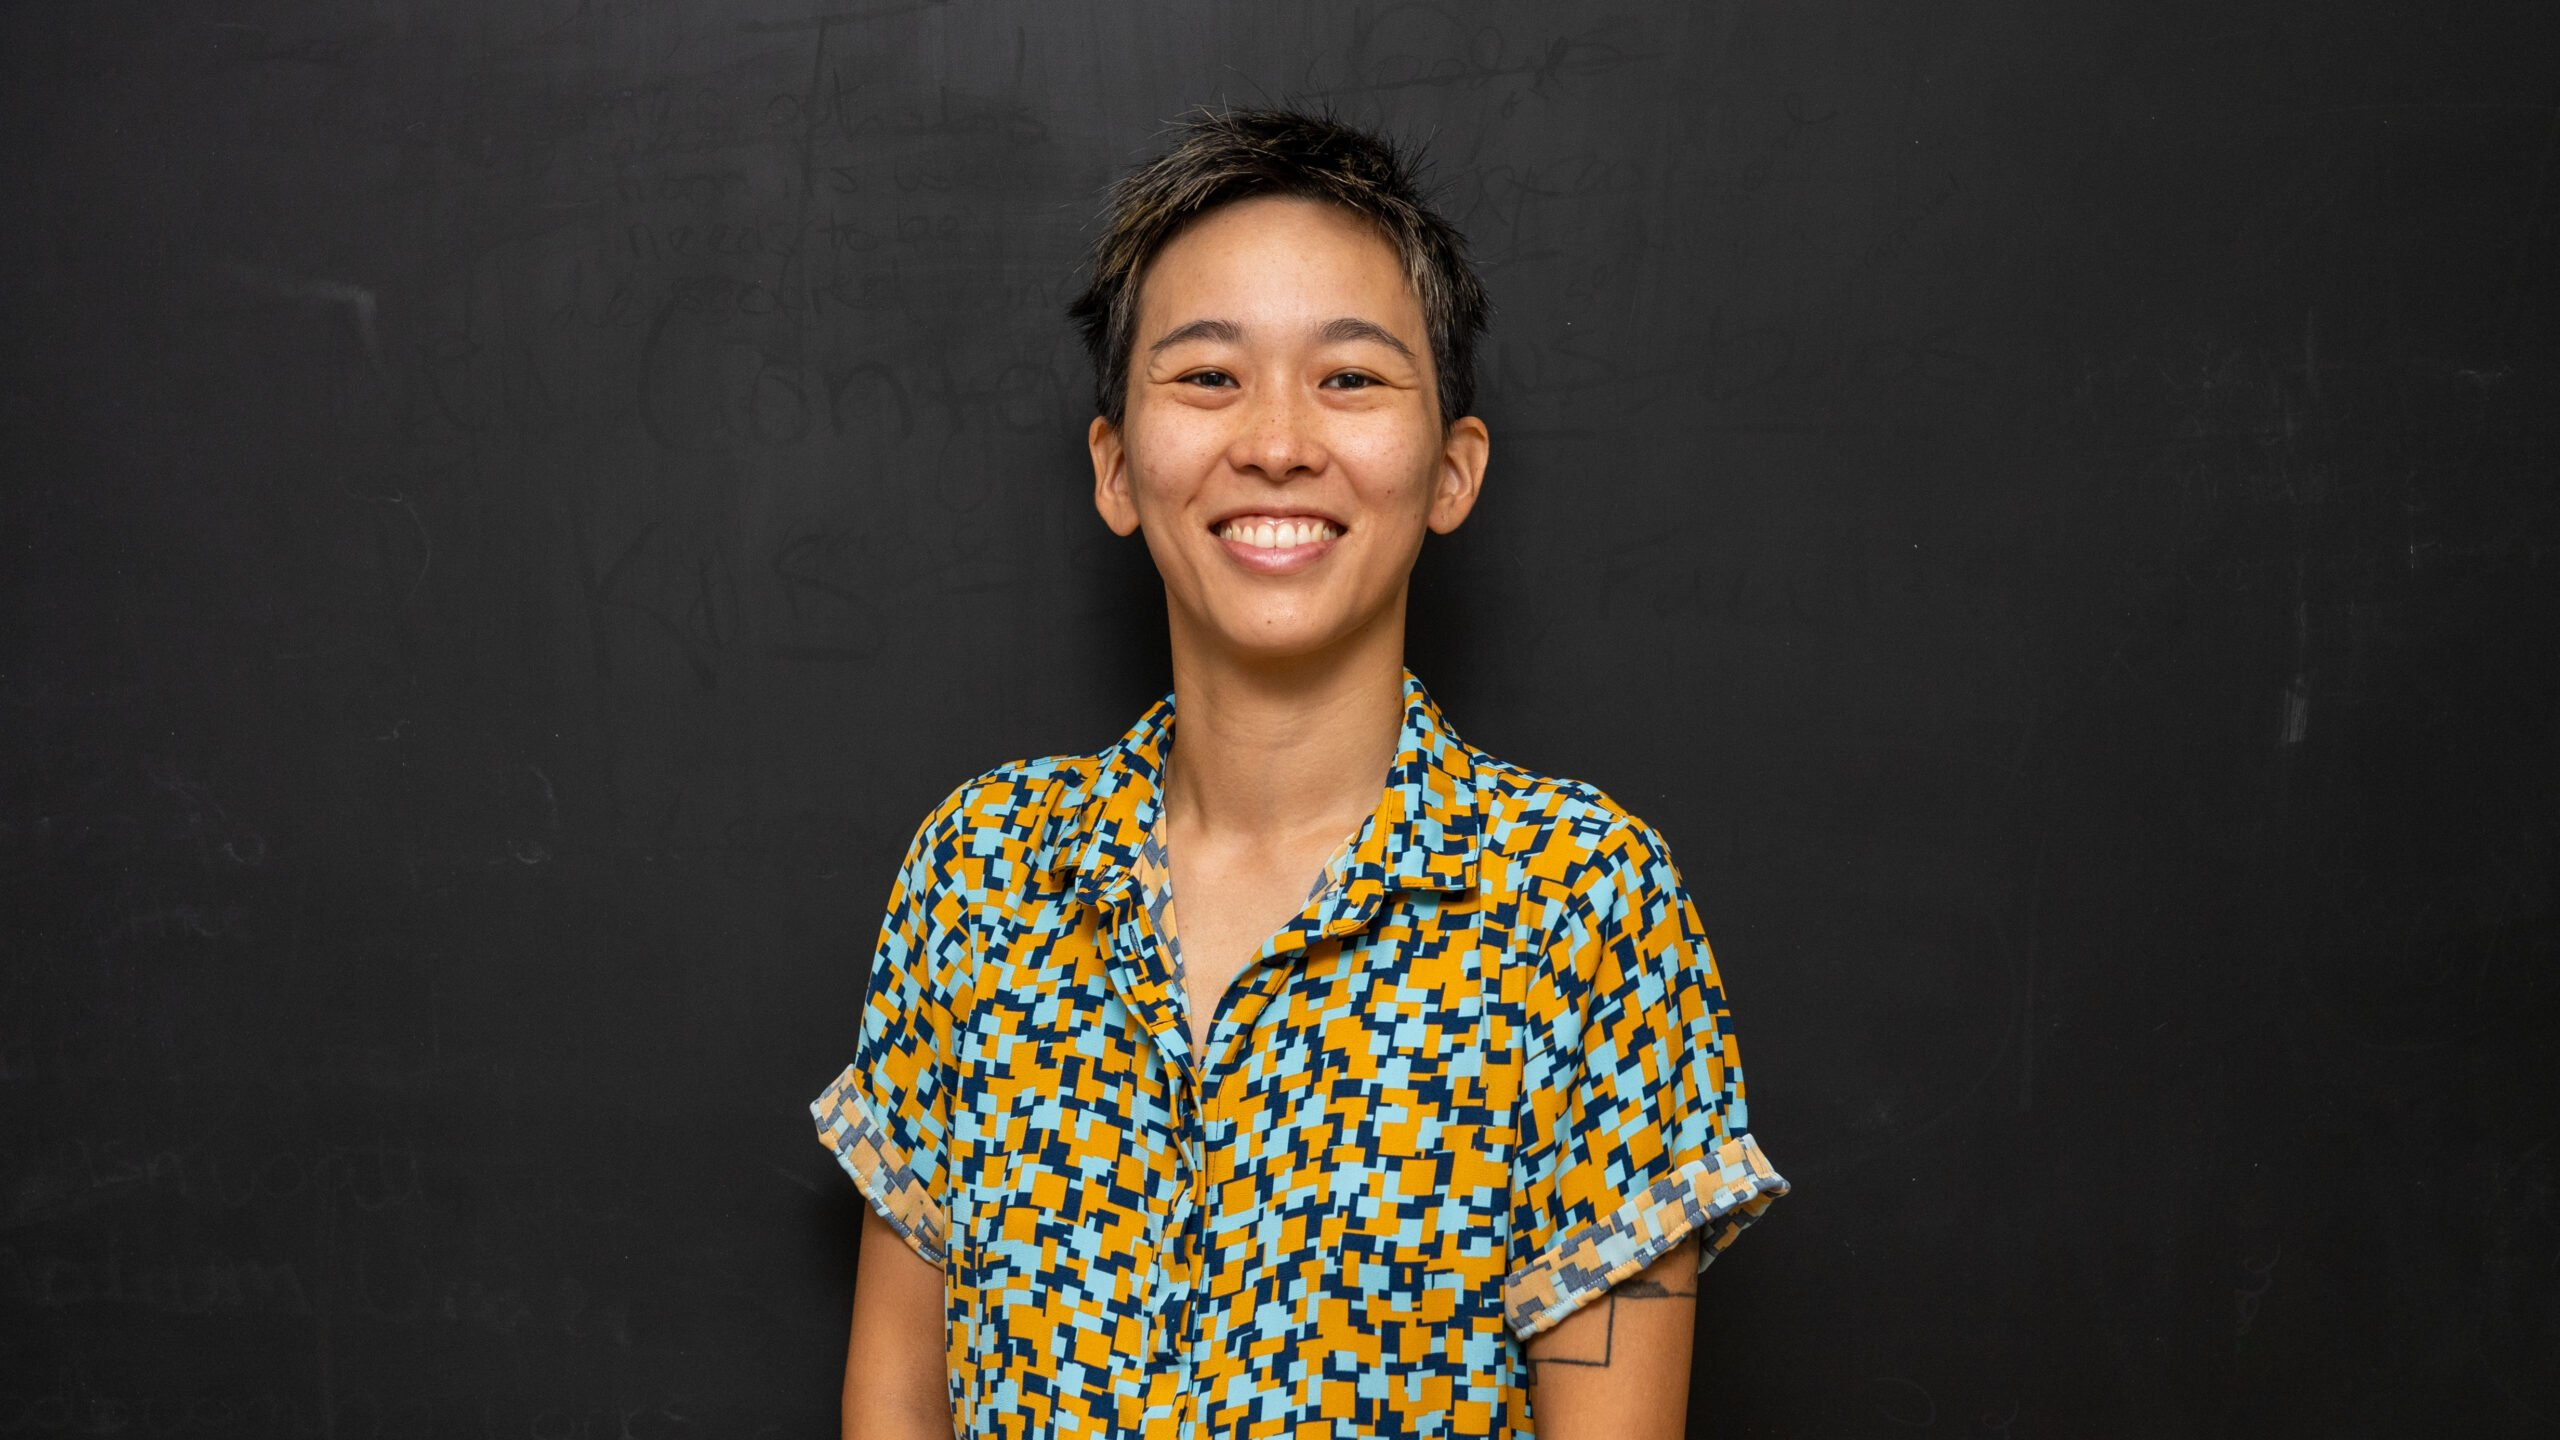 Stephanie Yim smiling for their photo wearing a colorful all overprint shirt.